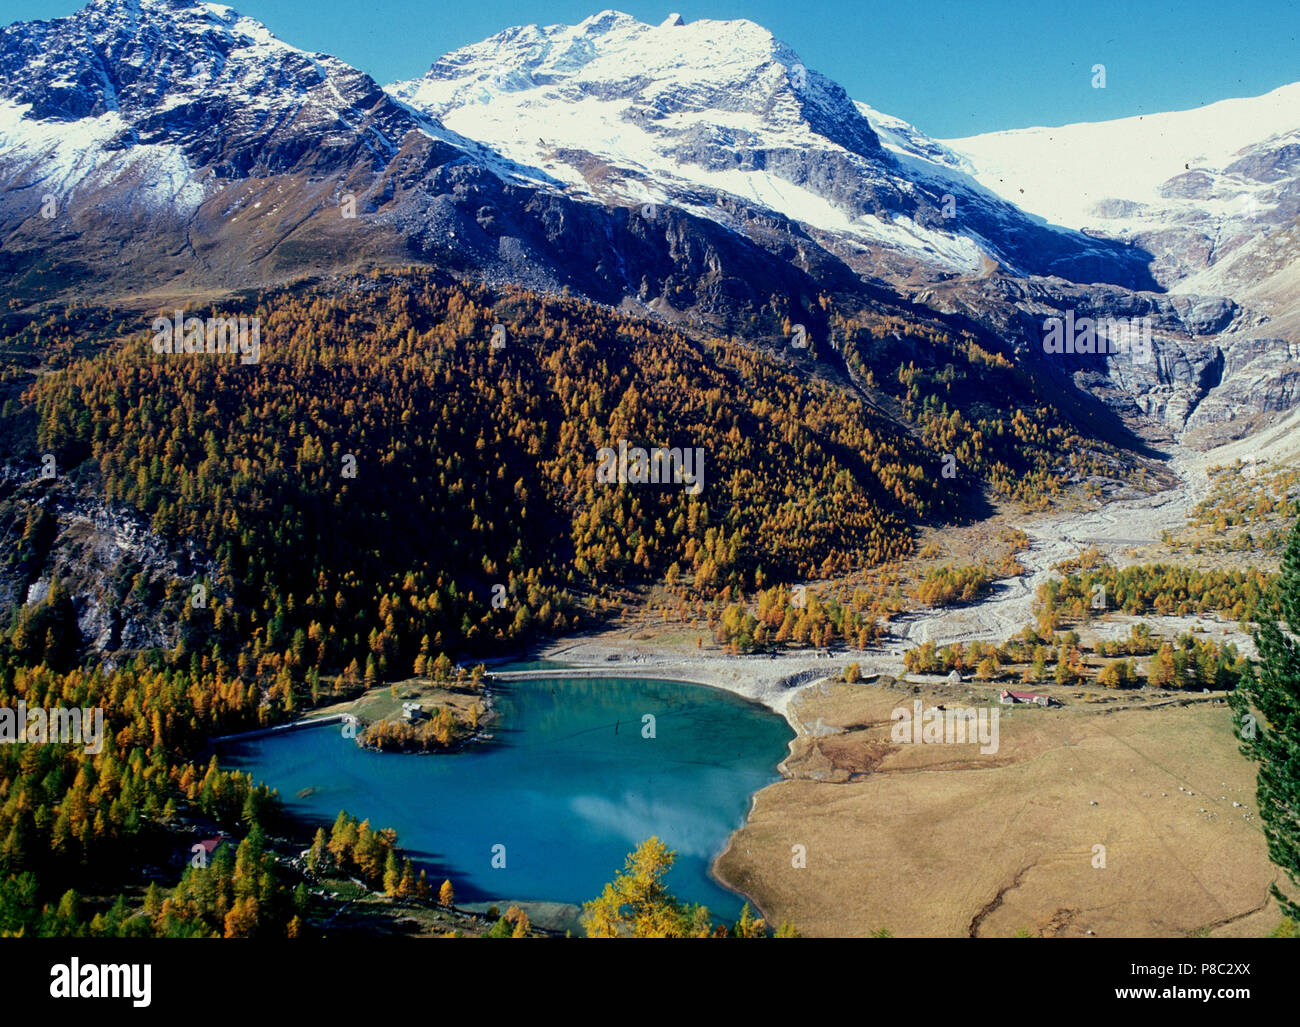 Swiss alps: Panoramic mountain and glacier lake view from Alp Grüm on Bernina Pass in the upper Engadin, - Stock Image